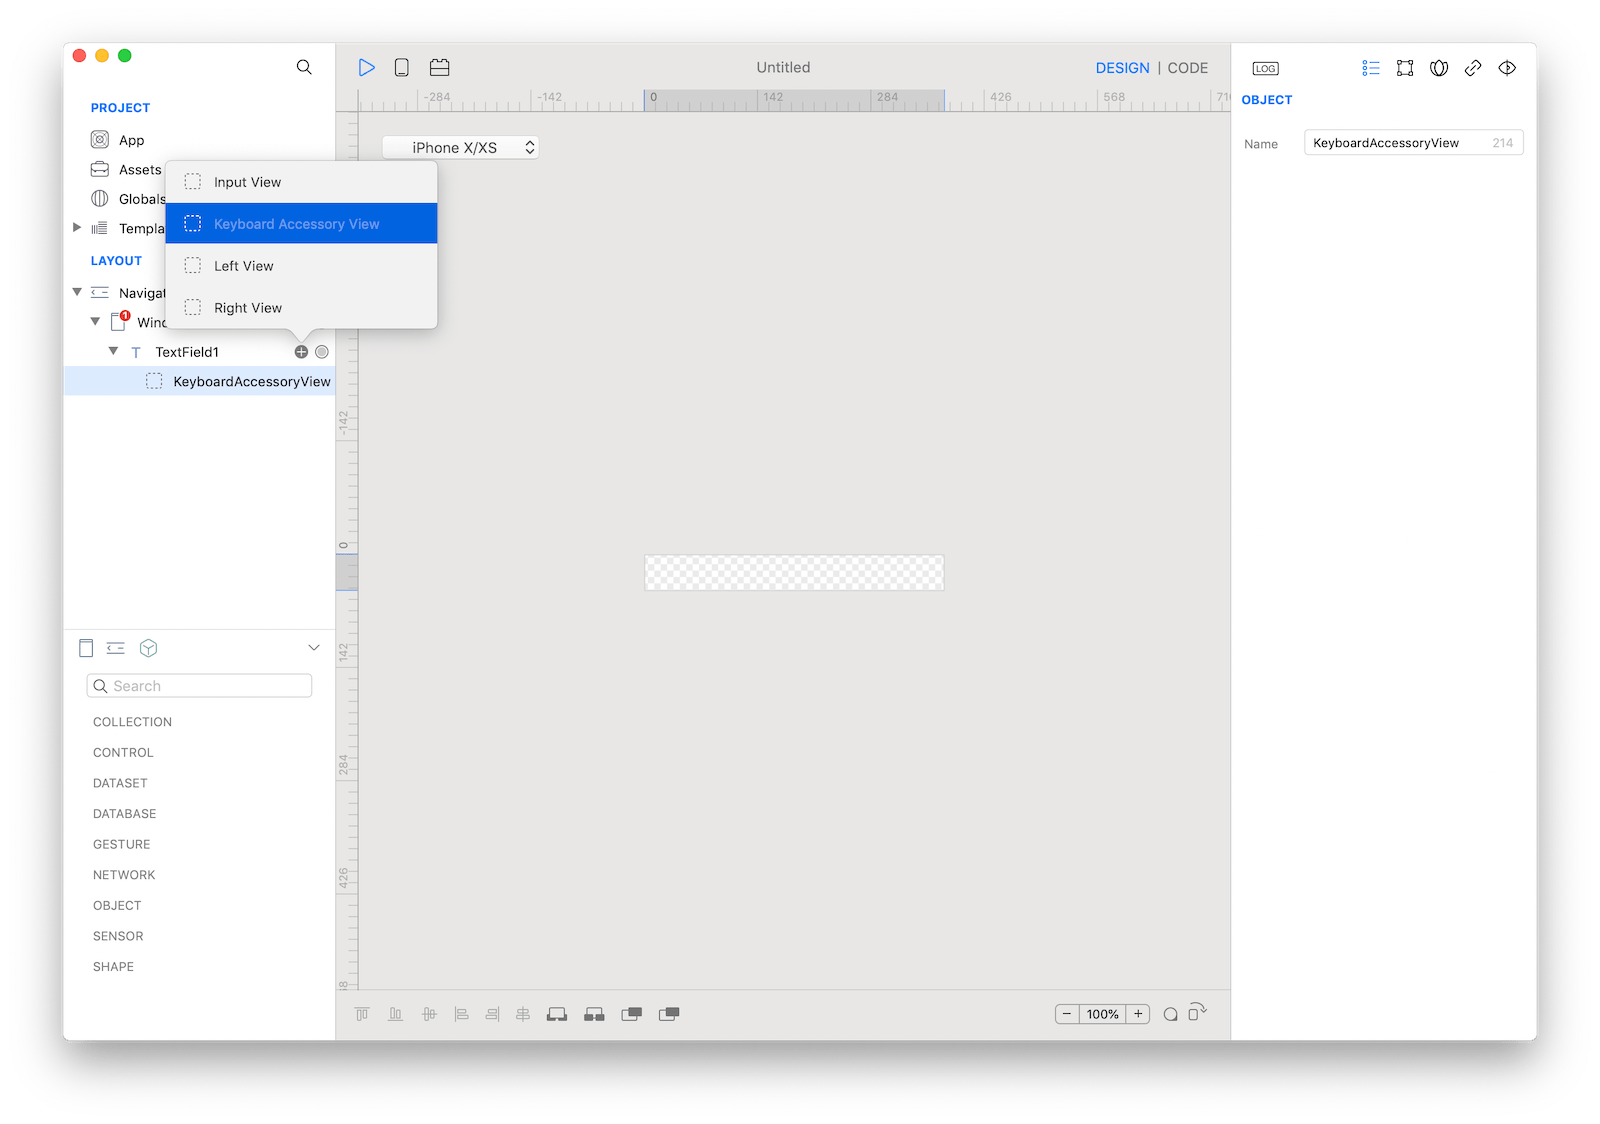 `TextField` keyboard accessory view